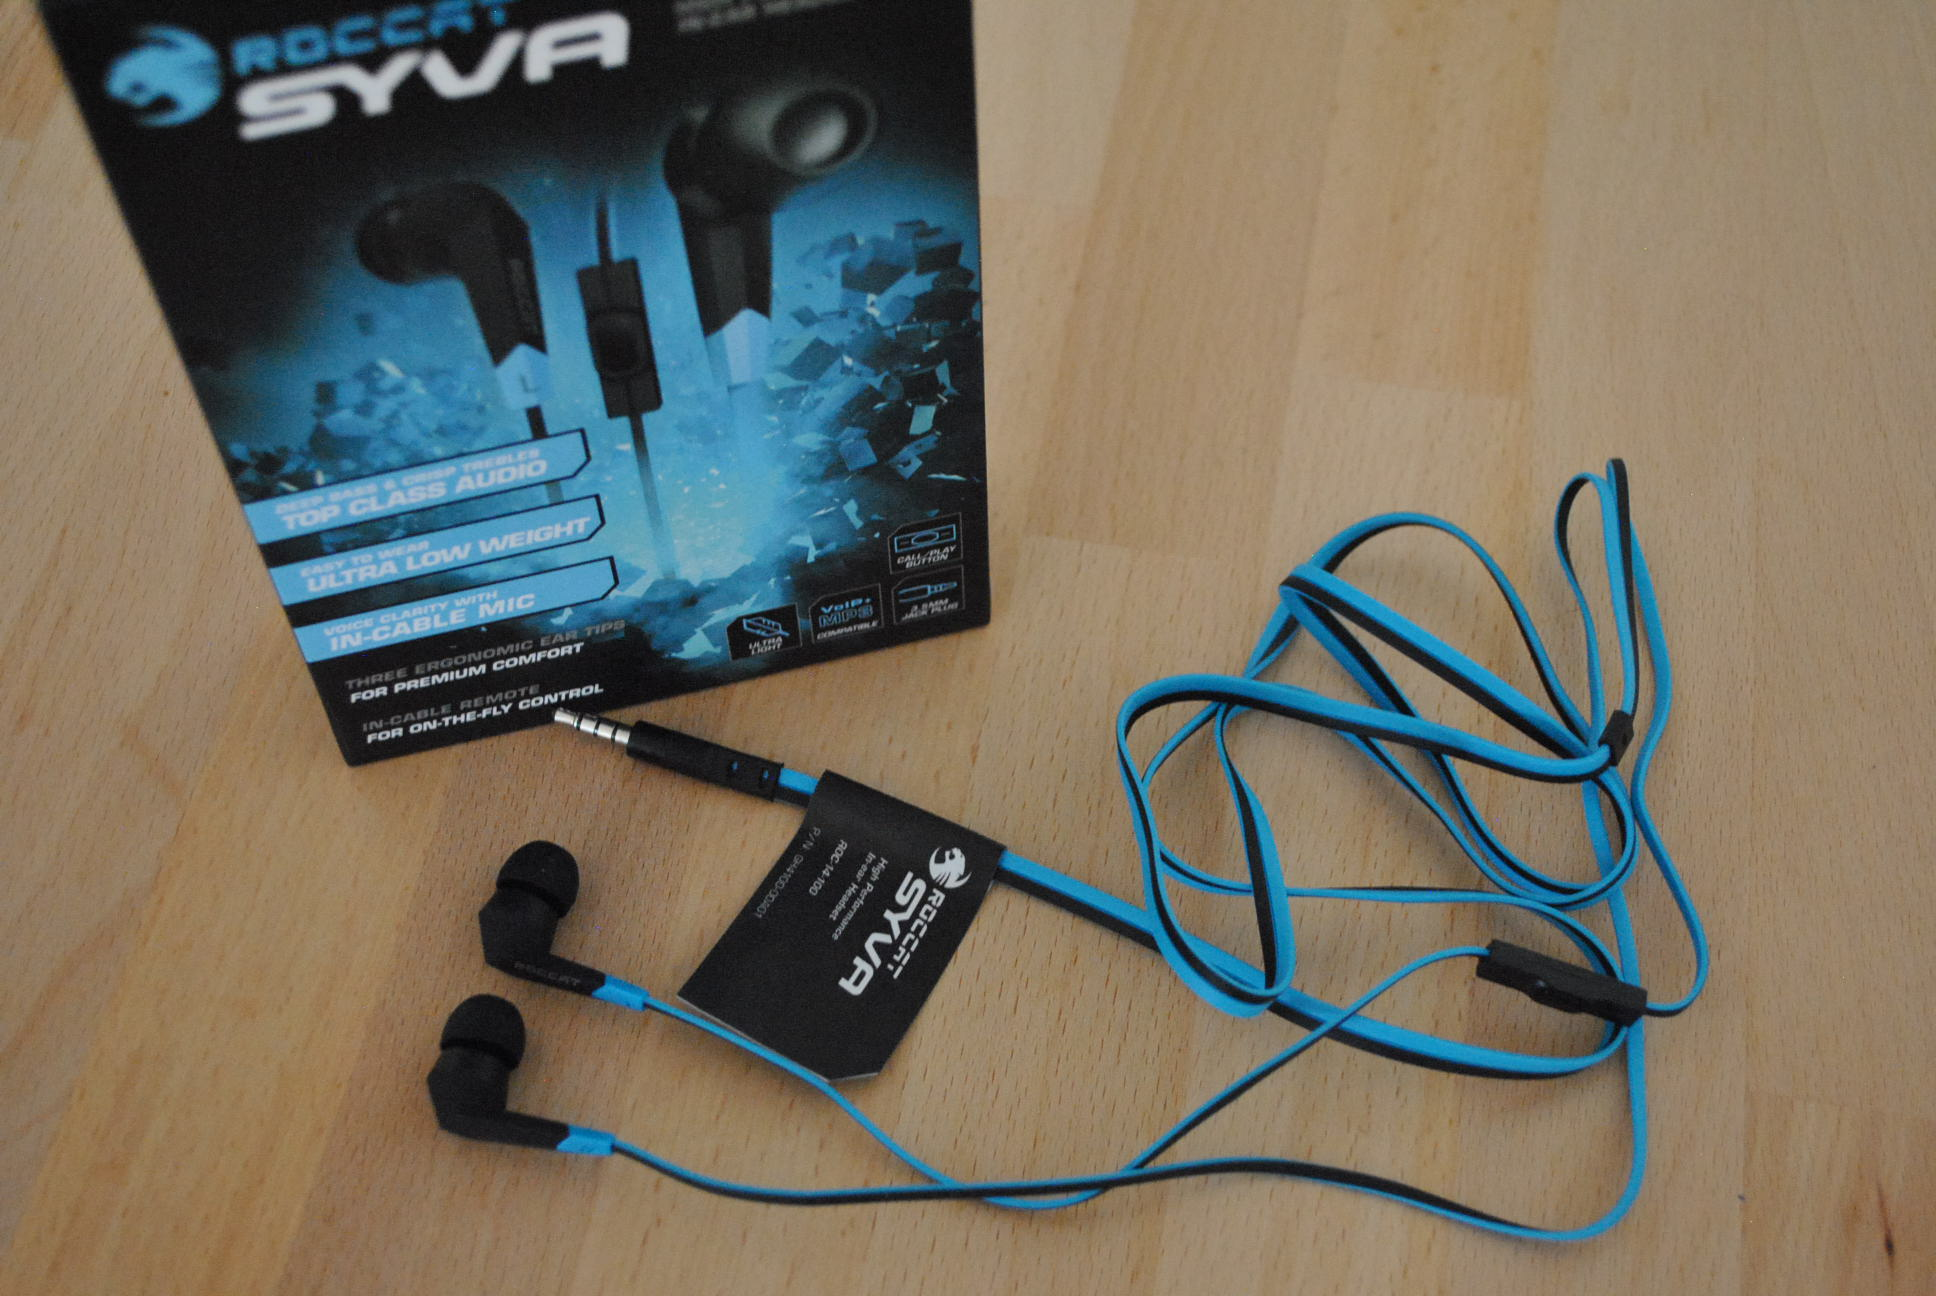 Iphone Entfernungsmesser Headset : Roccat syva high performance in ear headset im test